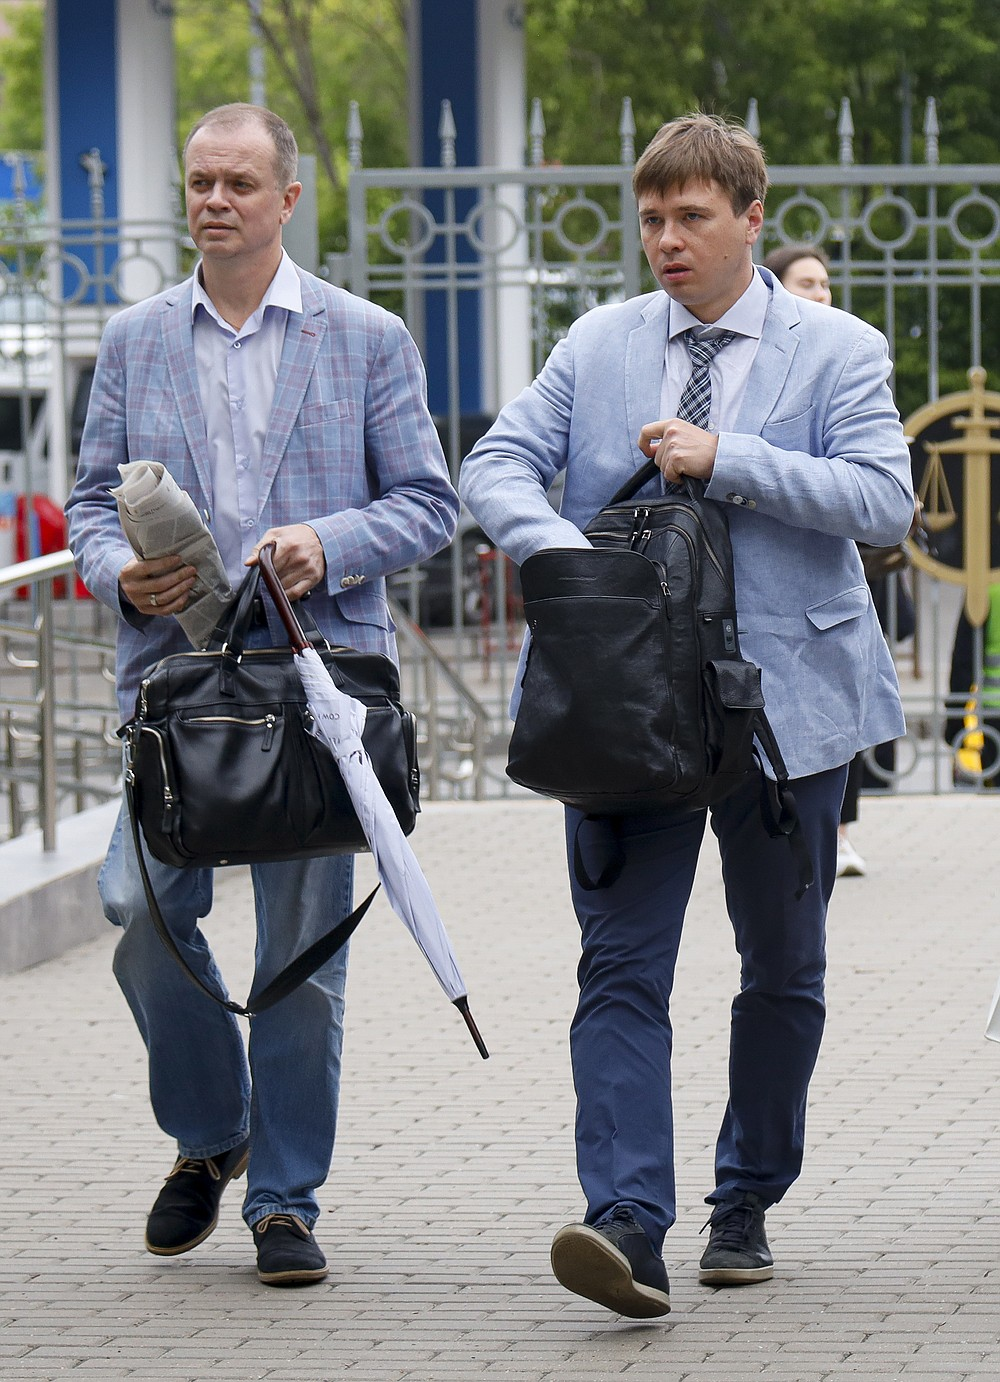 Russian lawyers Ivan Pavlov, left, and Yevgeny Smirnov walk to attend a court session in front of Moscow Court in Moscow, Russia, Wednesday, June 9, 2021. A Moscow court has outlawed the organizations founded by Russian opposition leader Alexei Navalny by labeling them extremist, the latest move in a campaign to silence dissent and bar Kremlin critics from running for parliament in September. The Moscow City Court's ruling, effective immediately, prevents people associated with Navalny's Foundation for Fighting Corruption and his sprawling regional network from seeking public office. (AP Photo/Alexander Zemlianichenko)